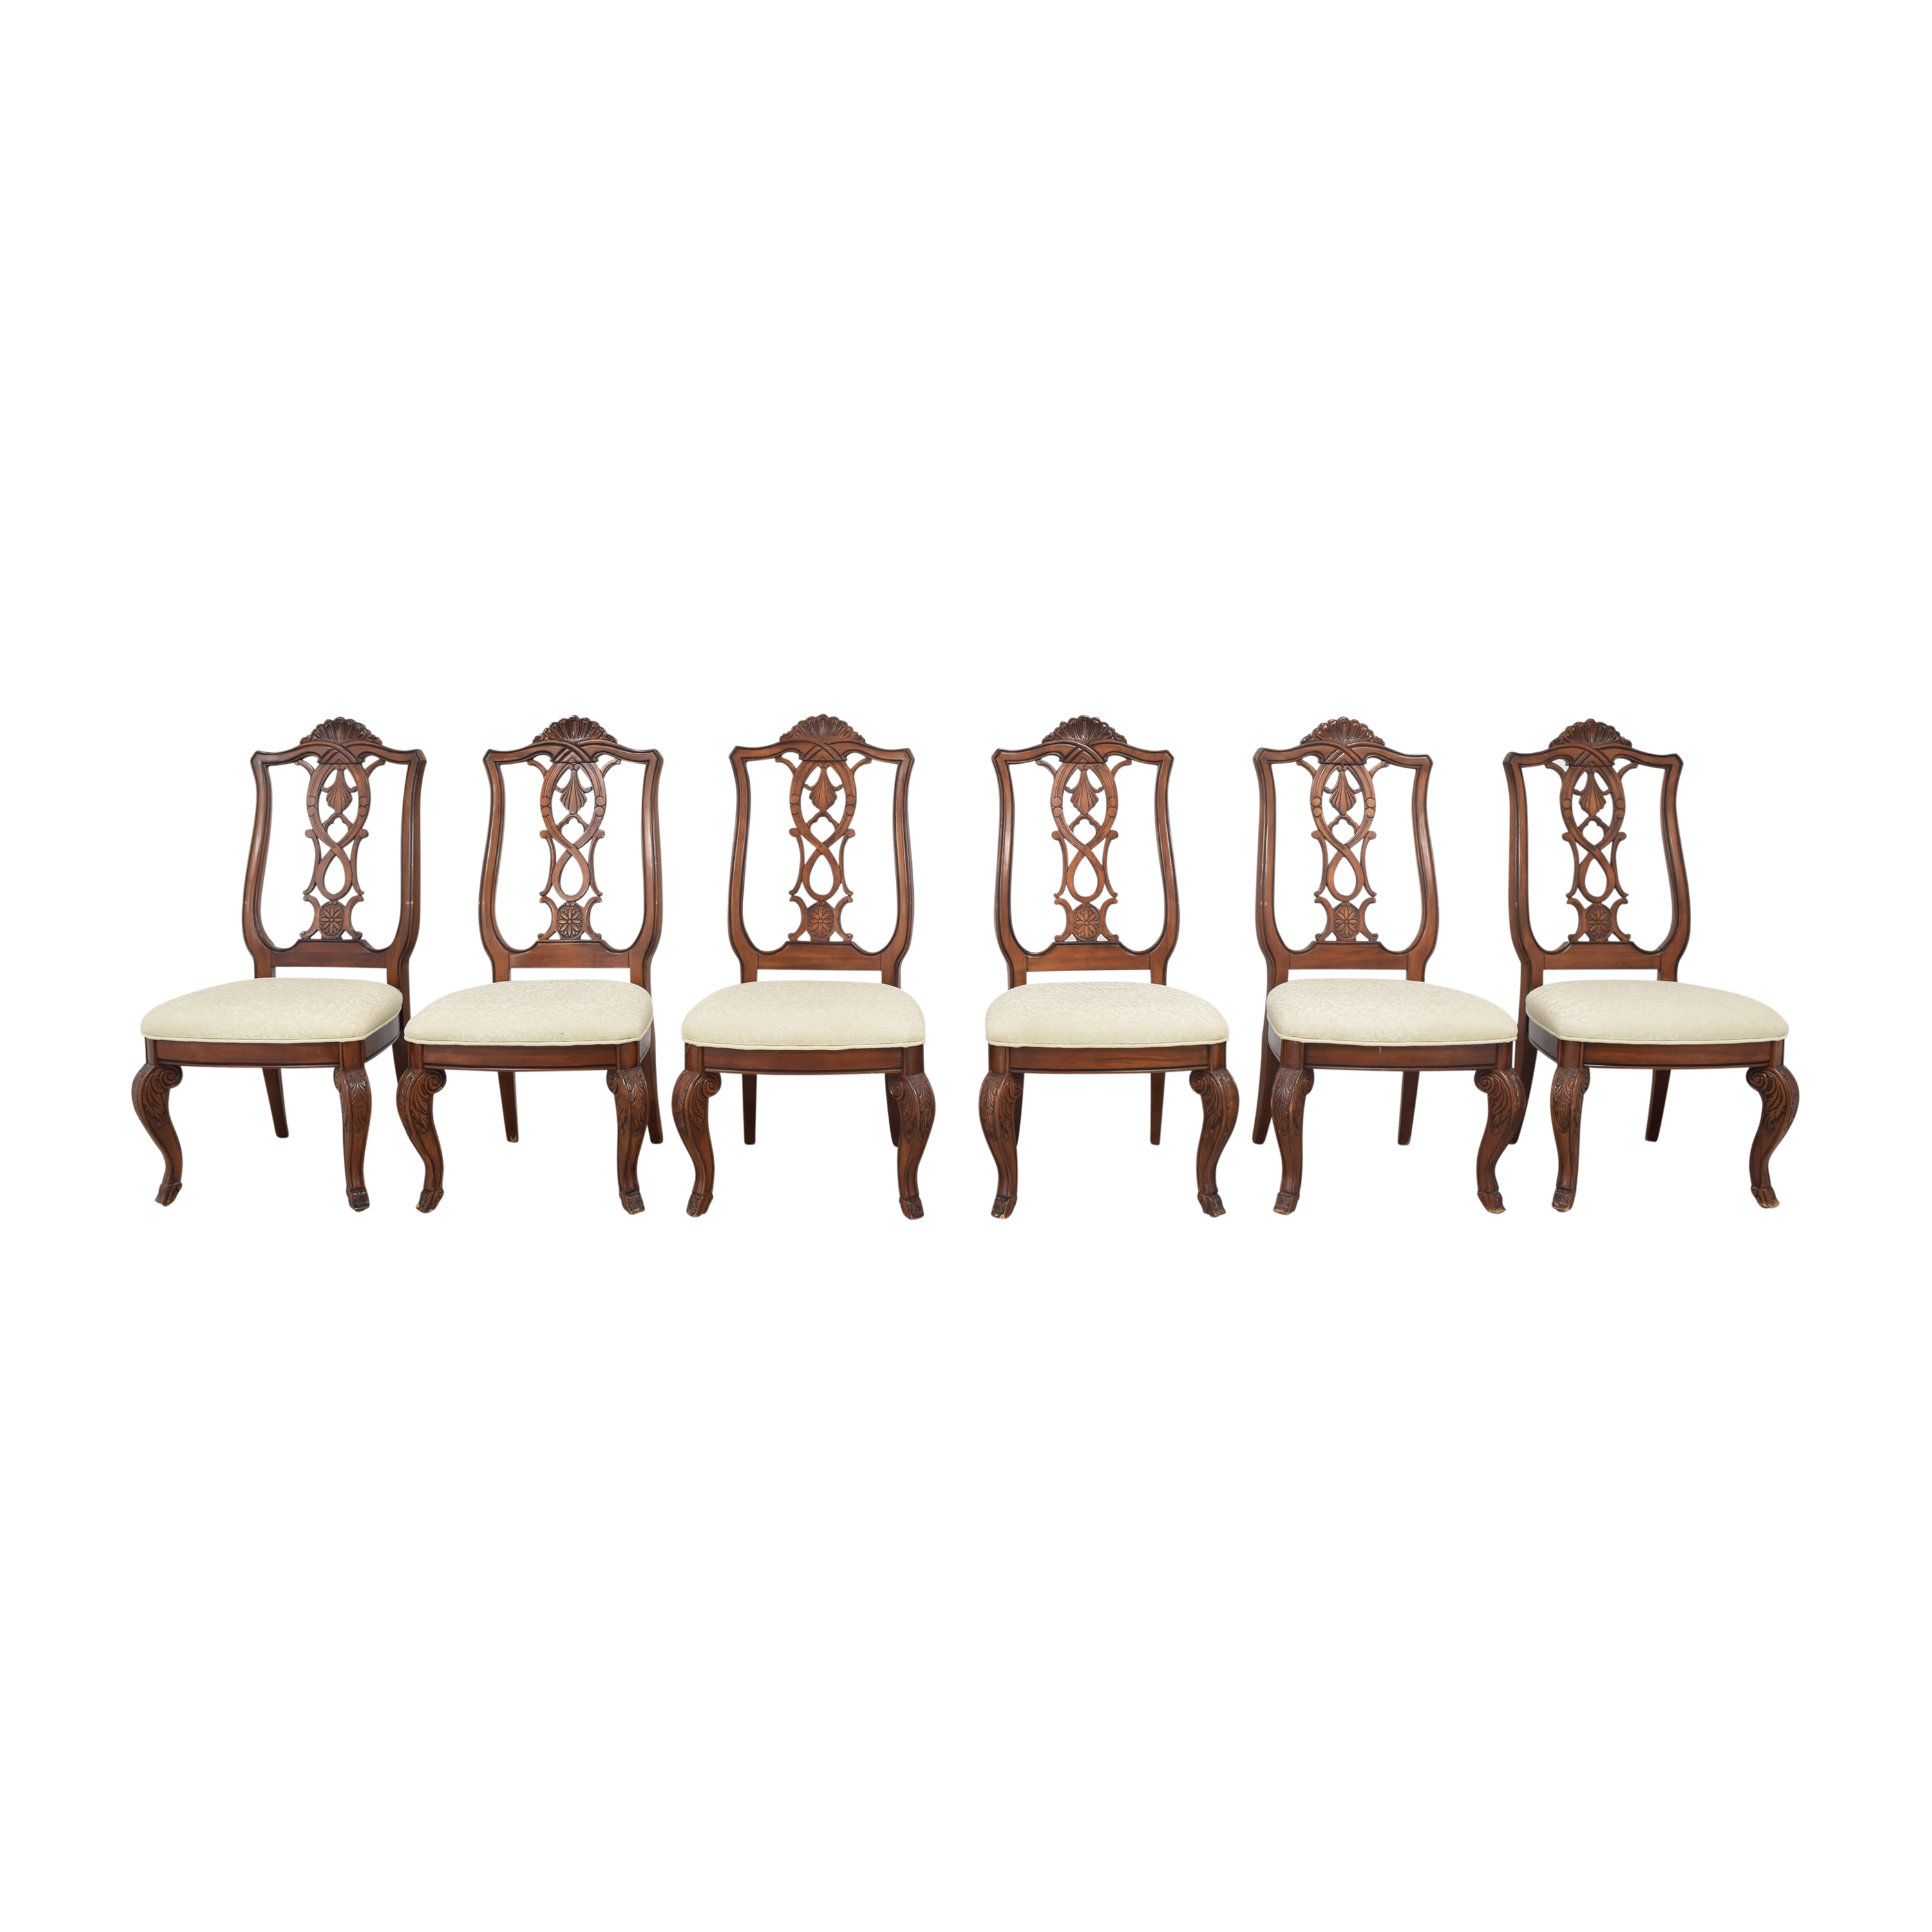 Raymour & Flanigan Raymour & Flanigan Upholstered Dining Chairs nyc